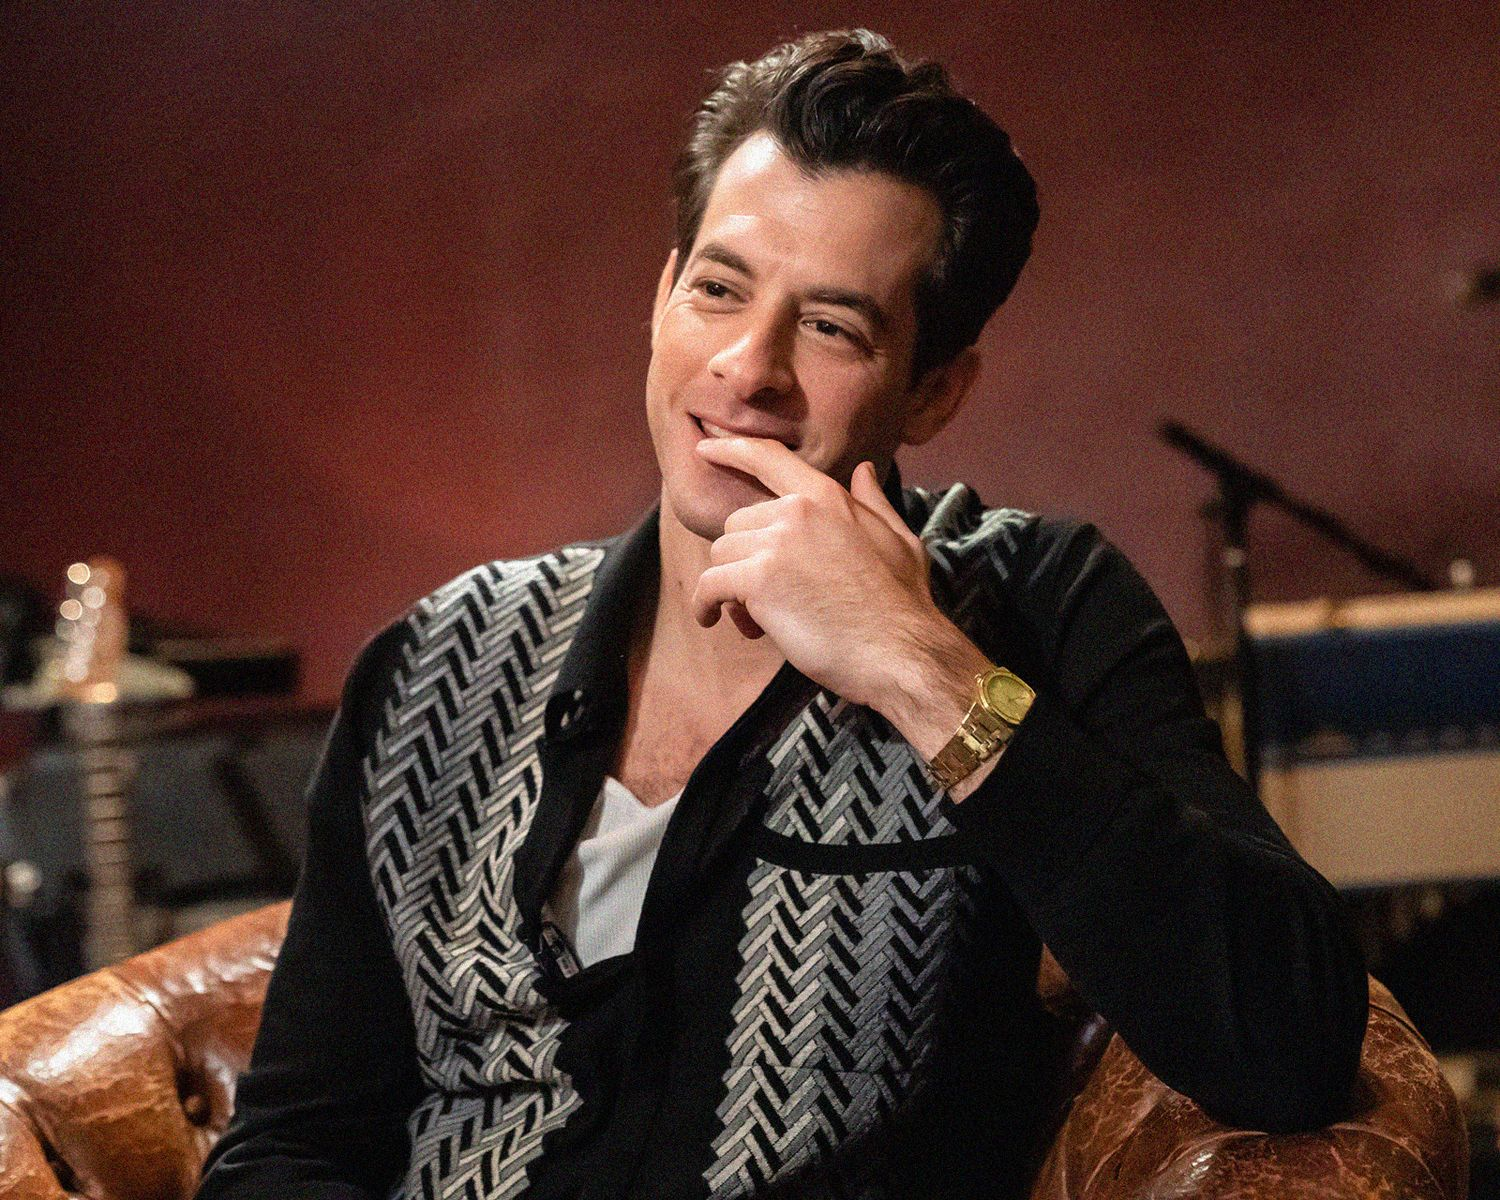 From Rolex to Audemars Piguet, Mark Ronson's watch collection is a megamix of smash hits